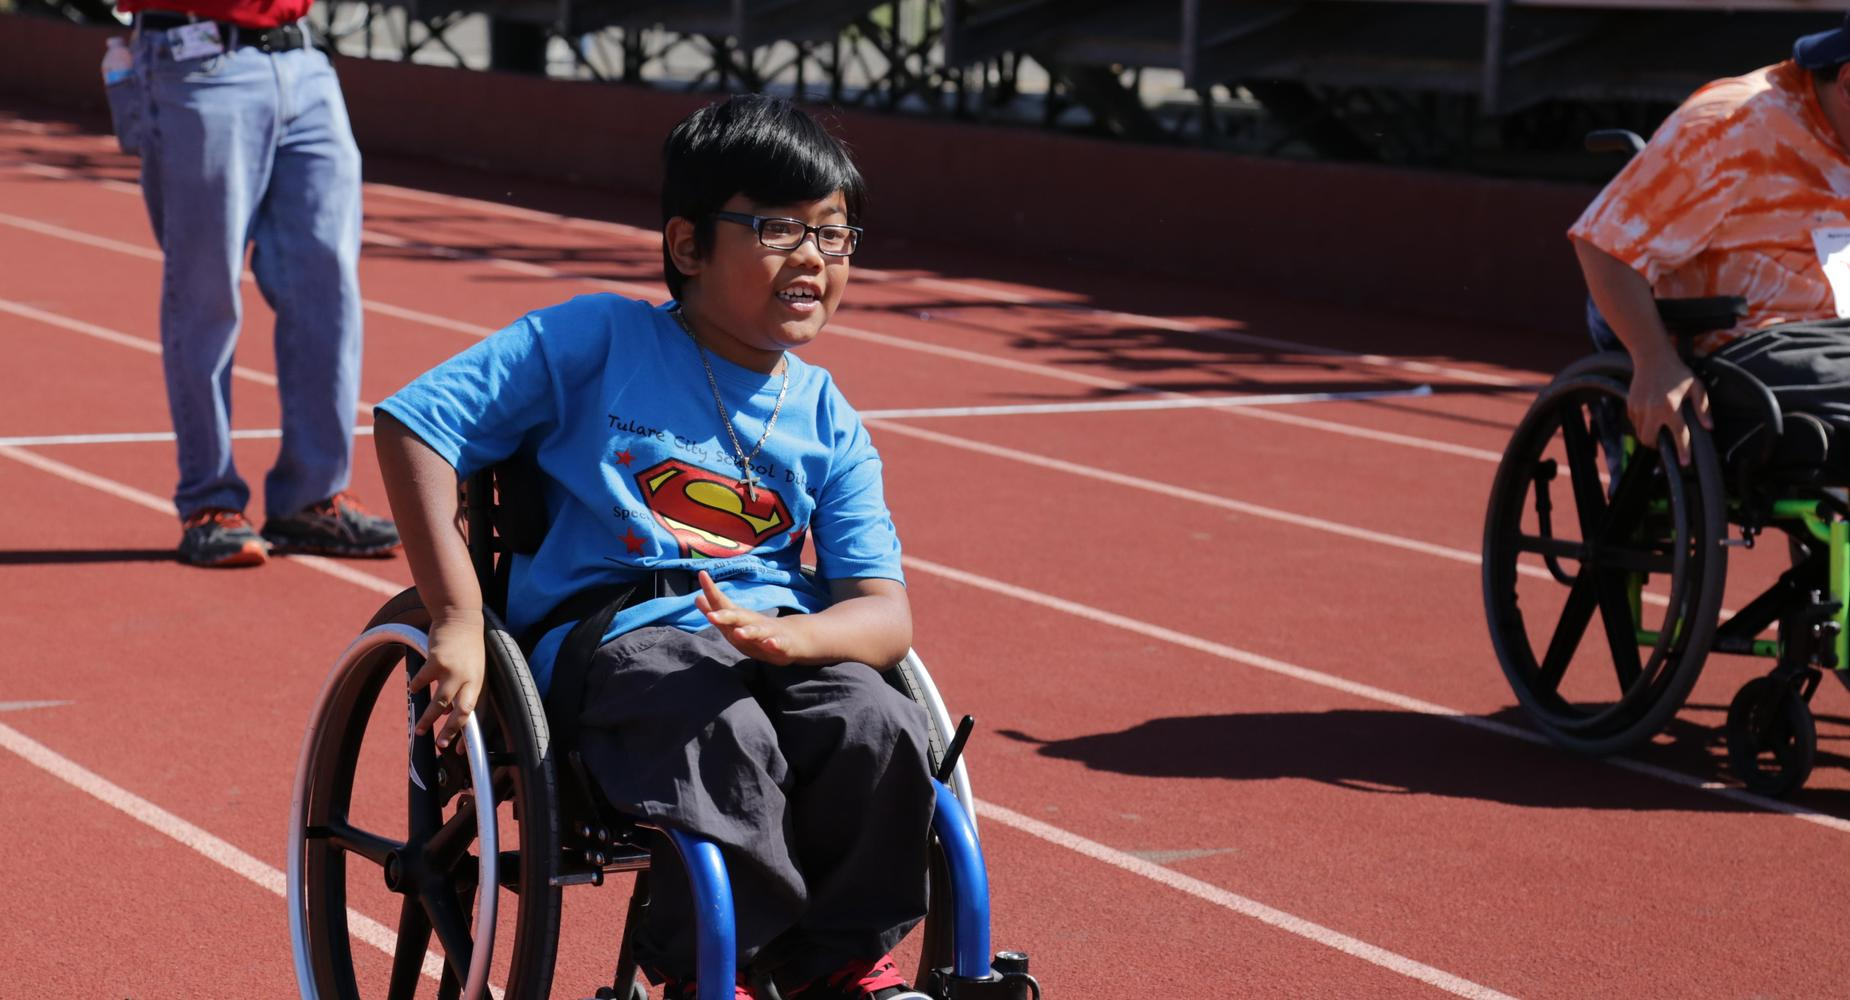 Student participating in wheelchair race